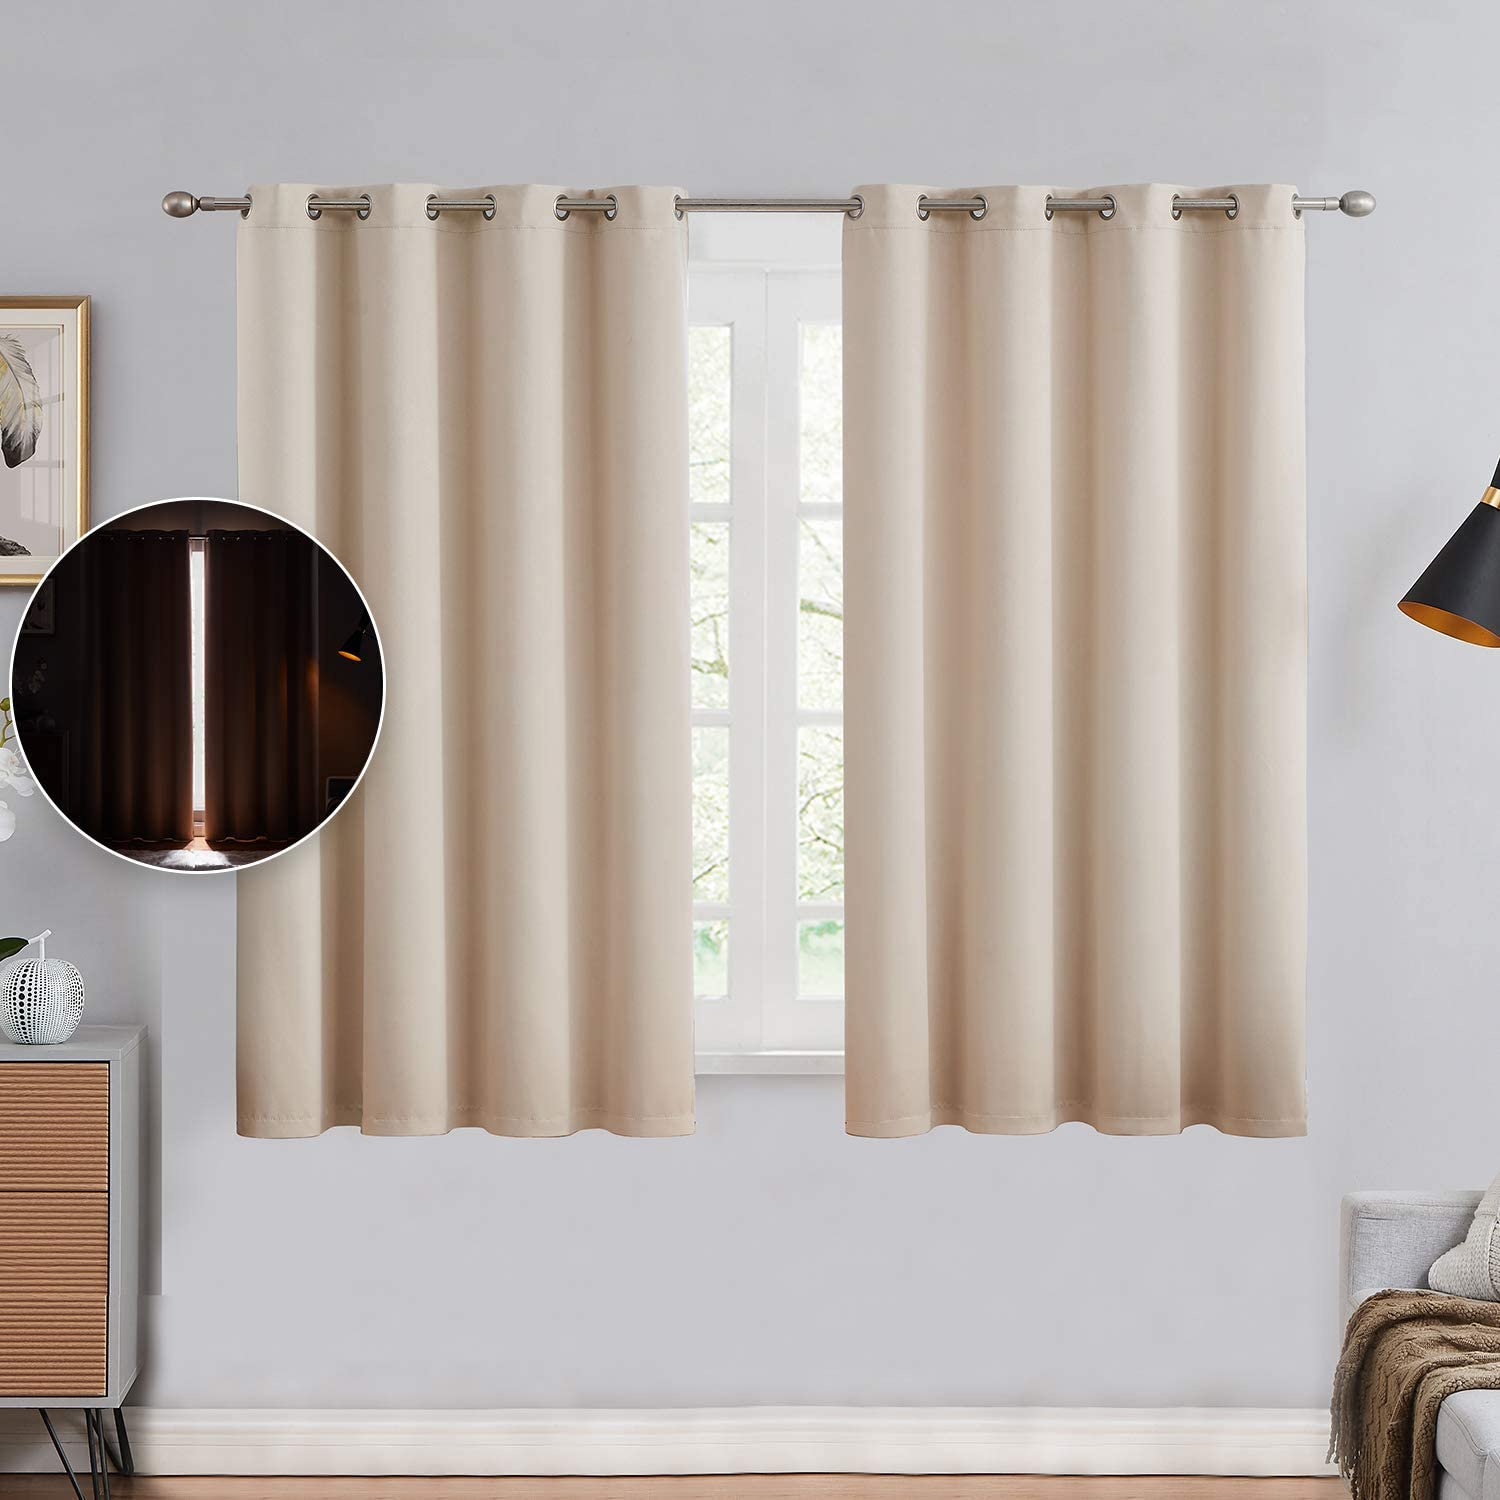 Blackout 5 popular Curtains Jacksonville Mall for Bedroom - Solid Energy Thermal Insulated